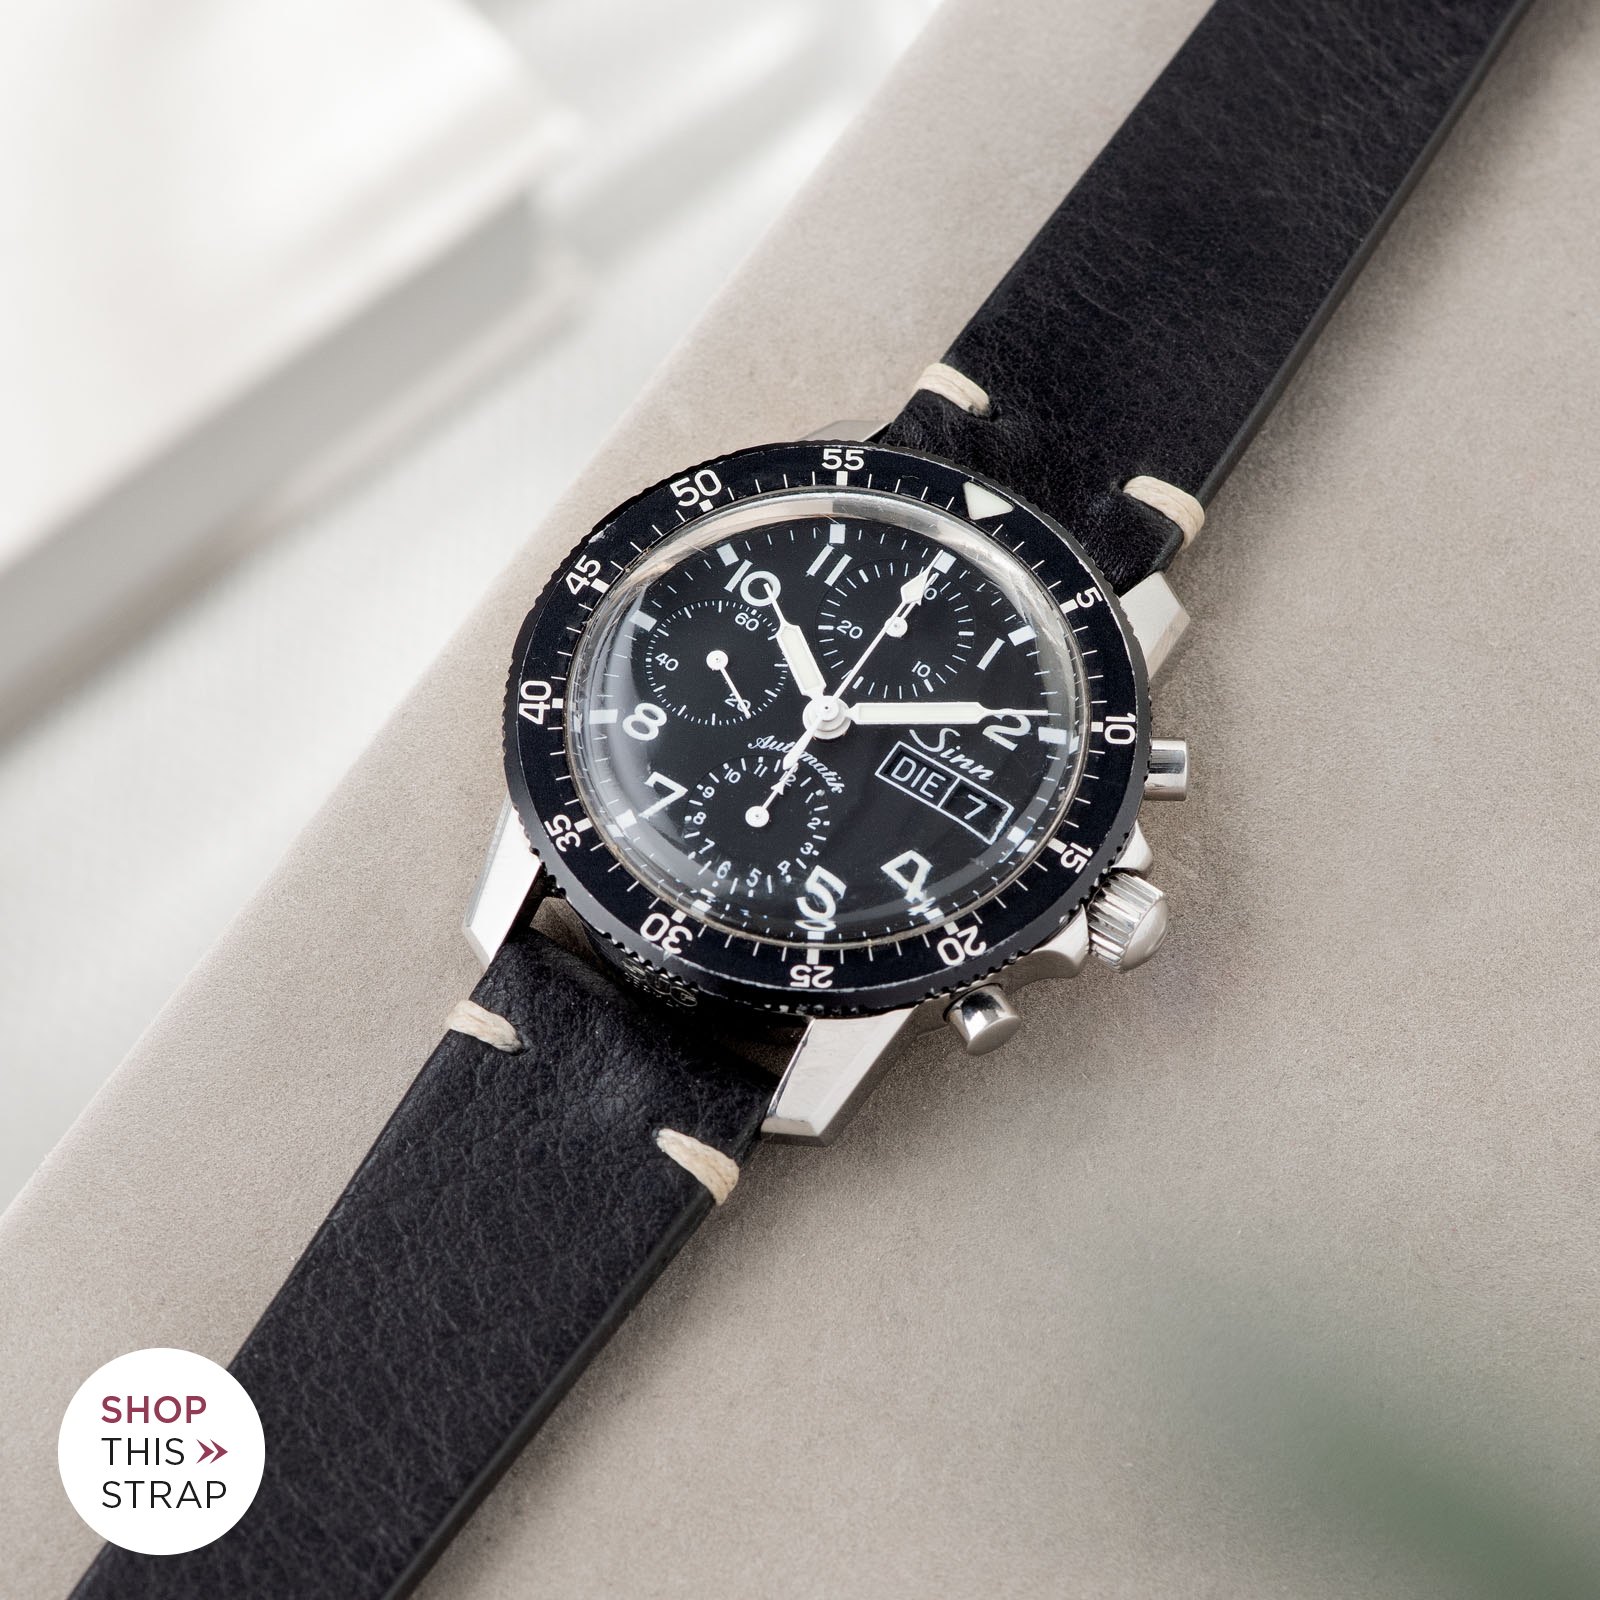 Bulang and Sons_Strap Guide_Sinn 103_Black Leather Watch Strap